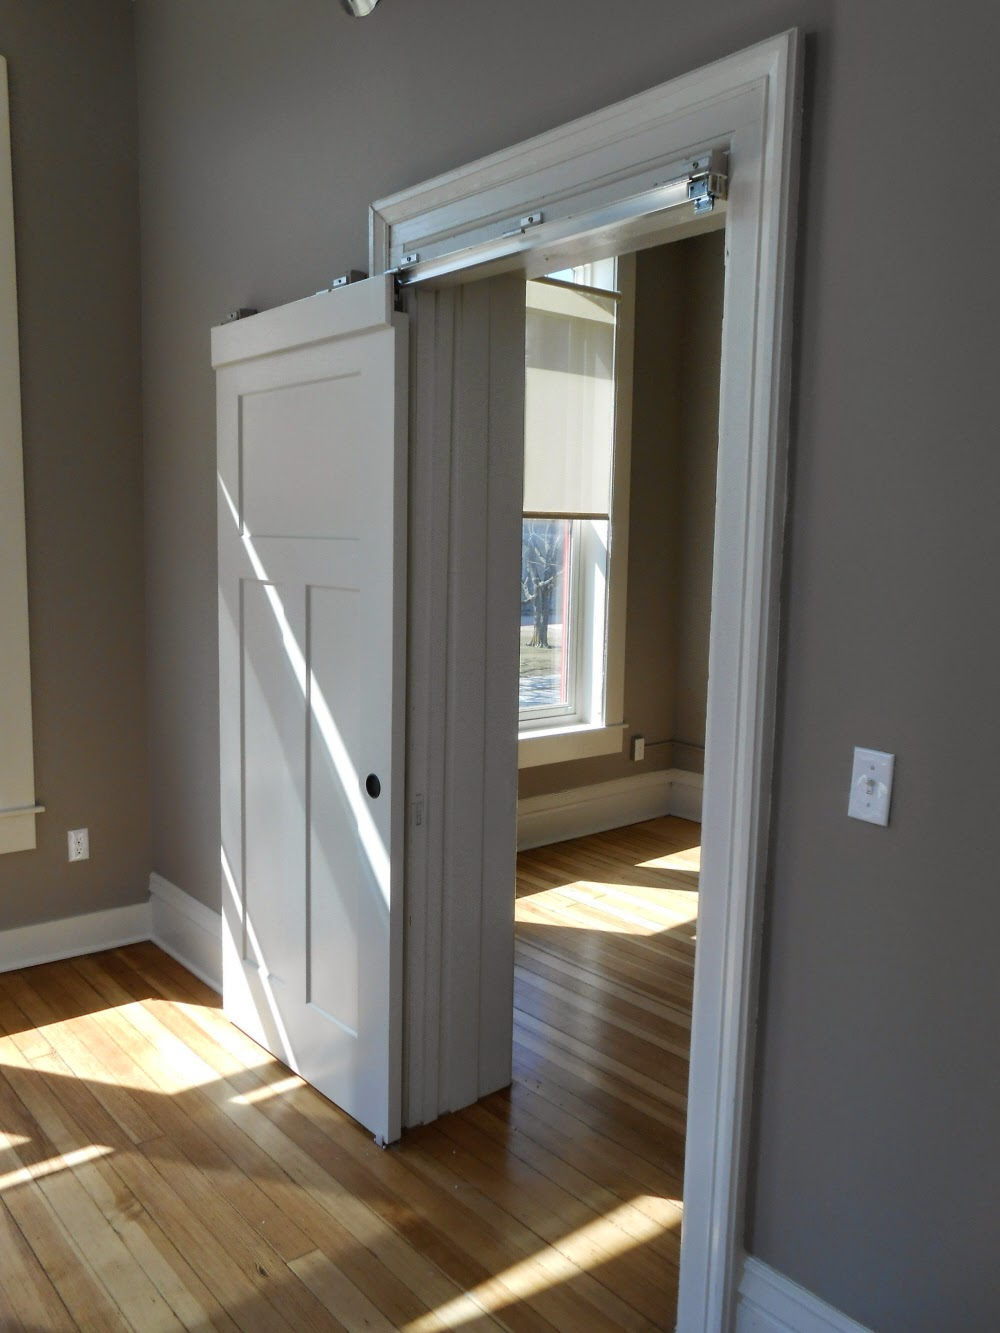 Swinging kitchen doors residential - Since Space Has Been Borrowed From This Room For A Commodious Closet And One Of The Closets That Opens From The Kitchen Dining Room It S A Small Space